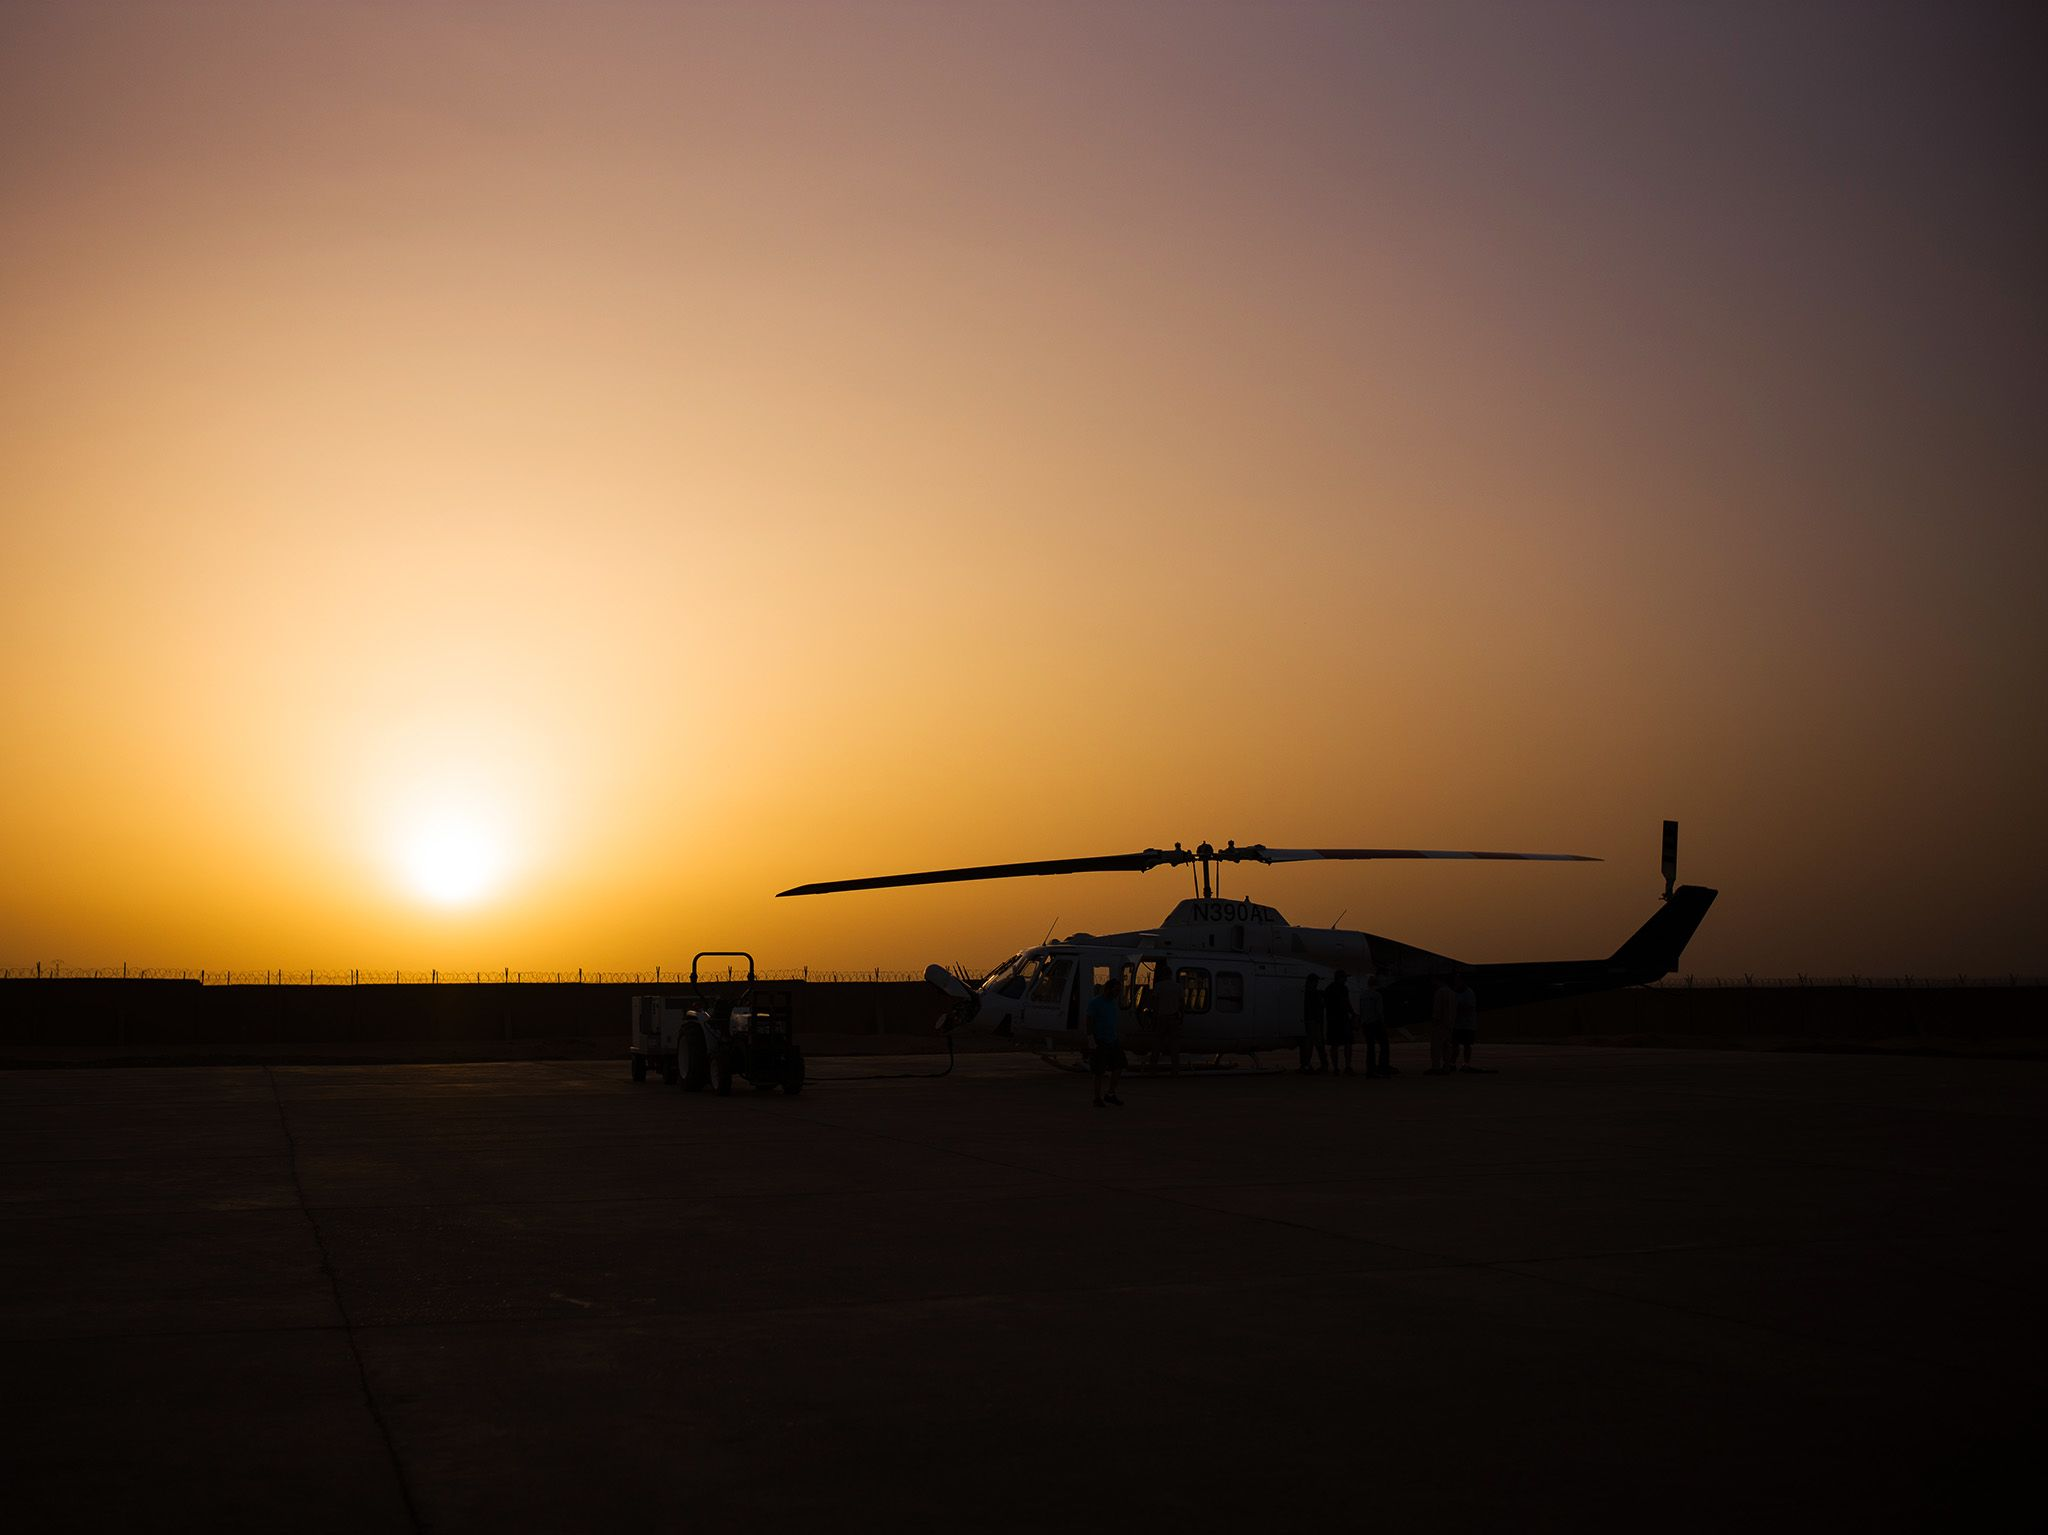 Niger:  A helicopter at sunset.  This image is from Chain of Command. [Photo of the day - February 2018]